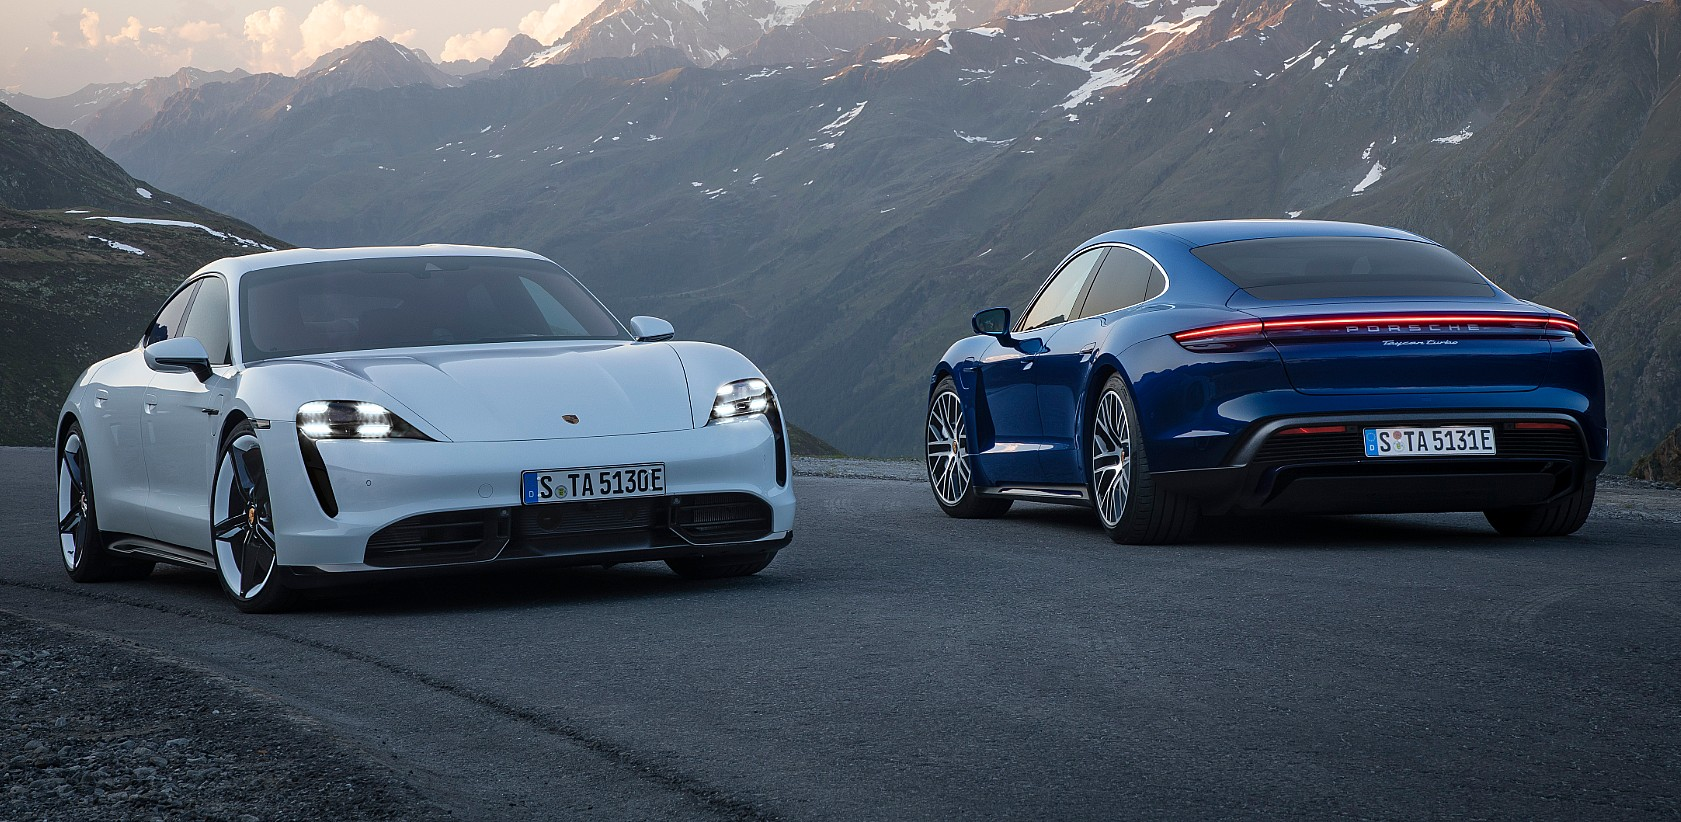 Porsche Taycan Turbo S vs. Turbo